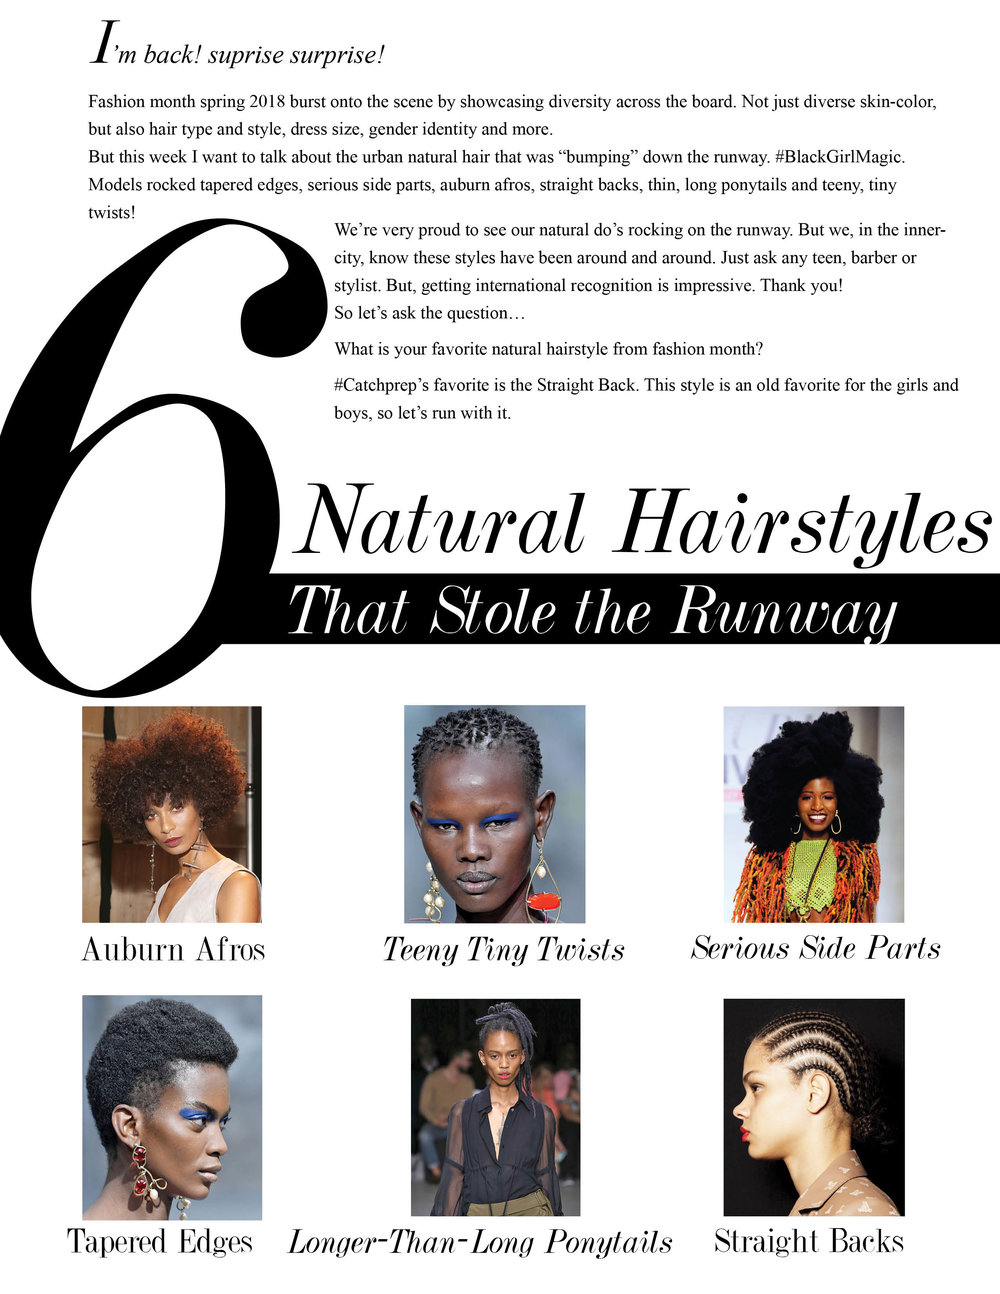 6NaturalHairStyles_v2.jpg